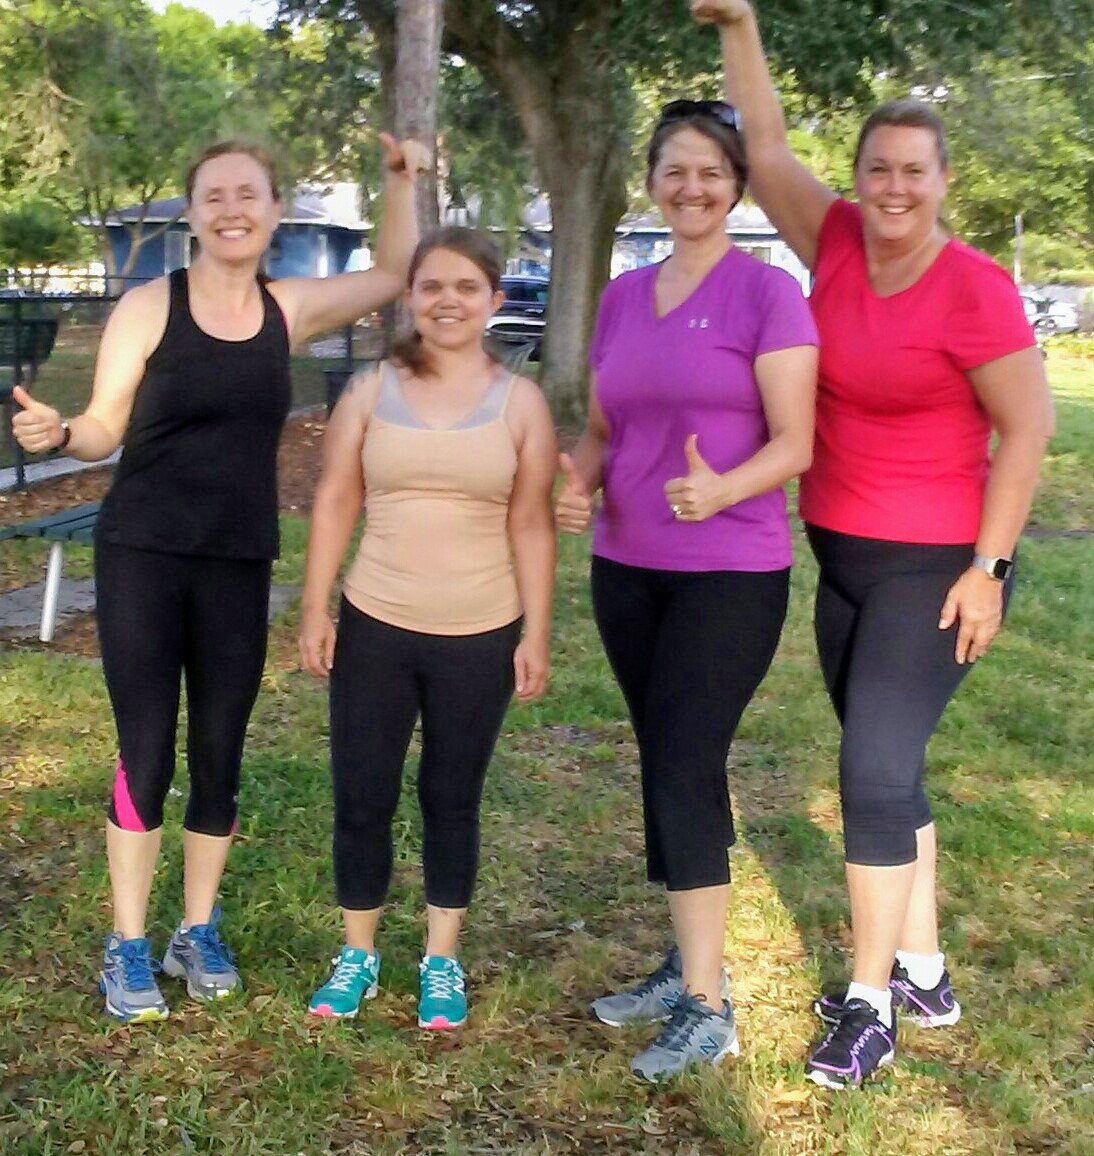 St Pete Boot Camp & Weight Loss Workouts, Personal Training near Tierra Verde